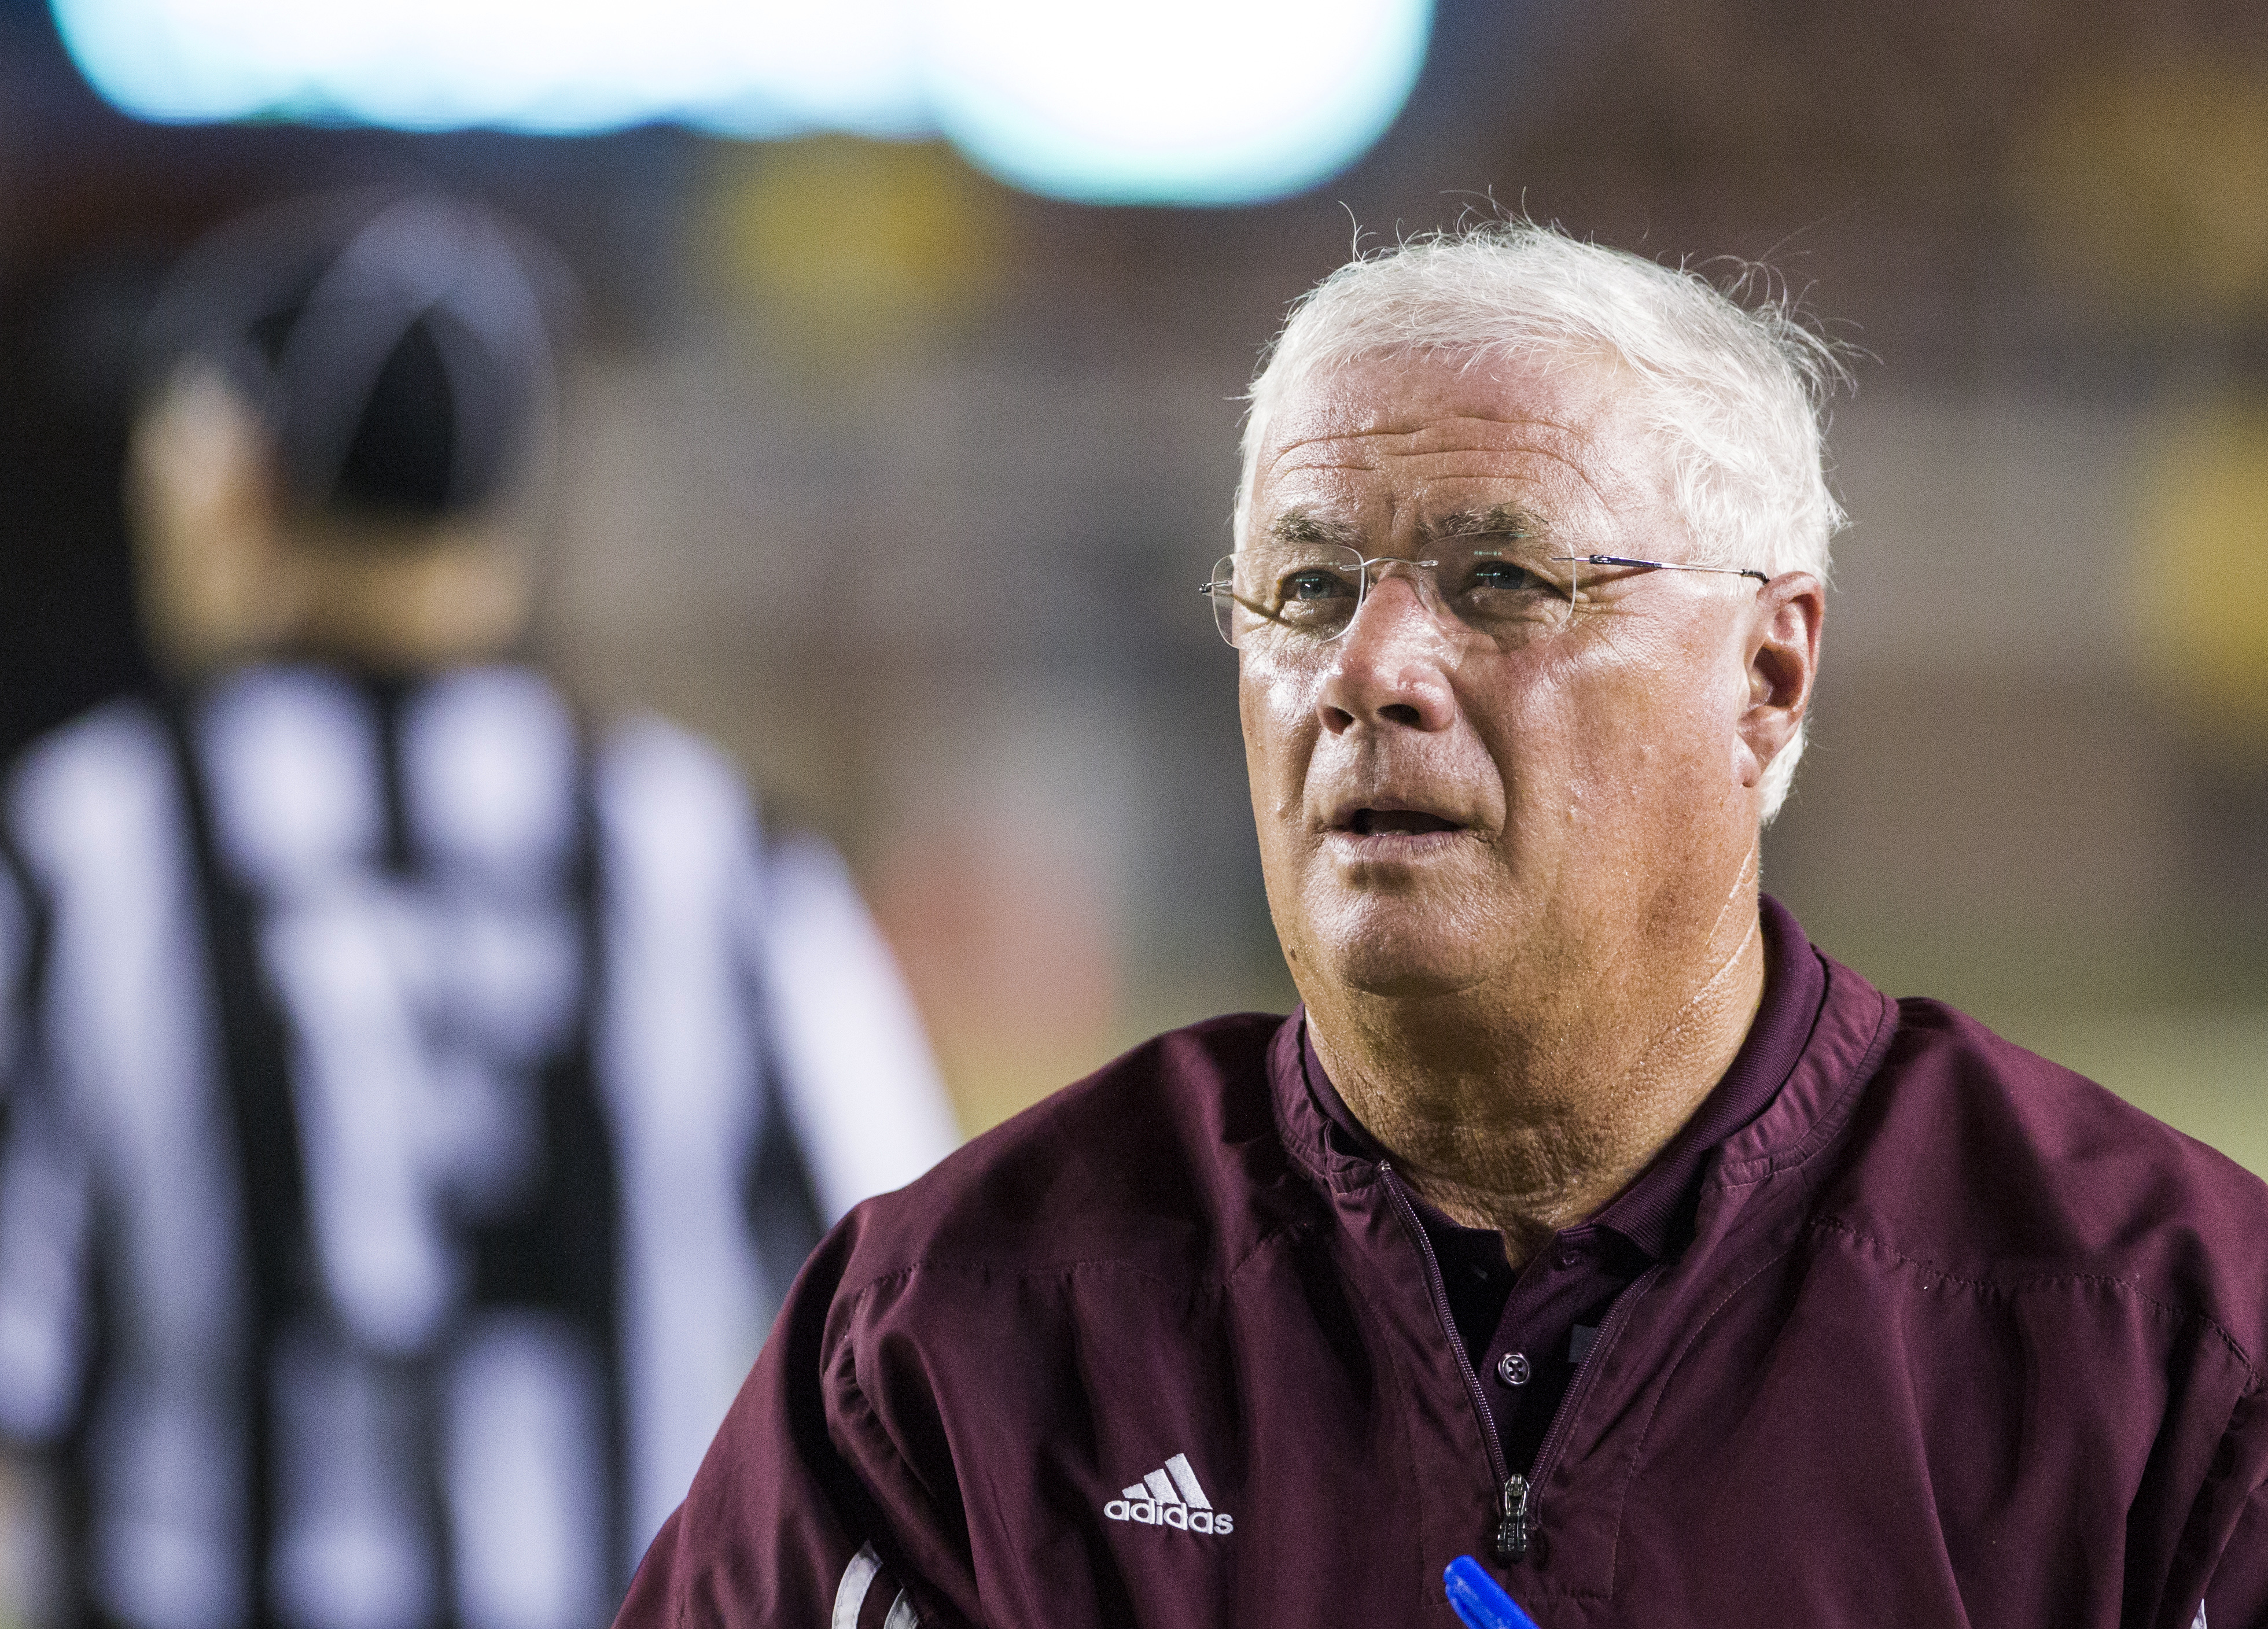 Texas State head coach Dennis Franchione looks up during the first half of his team's NCAA college football game against Florida State in Tallahassee, Fla., Saturday, Sept. 5, 2015. (AP Photo/Mark Wallheiser)